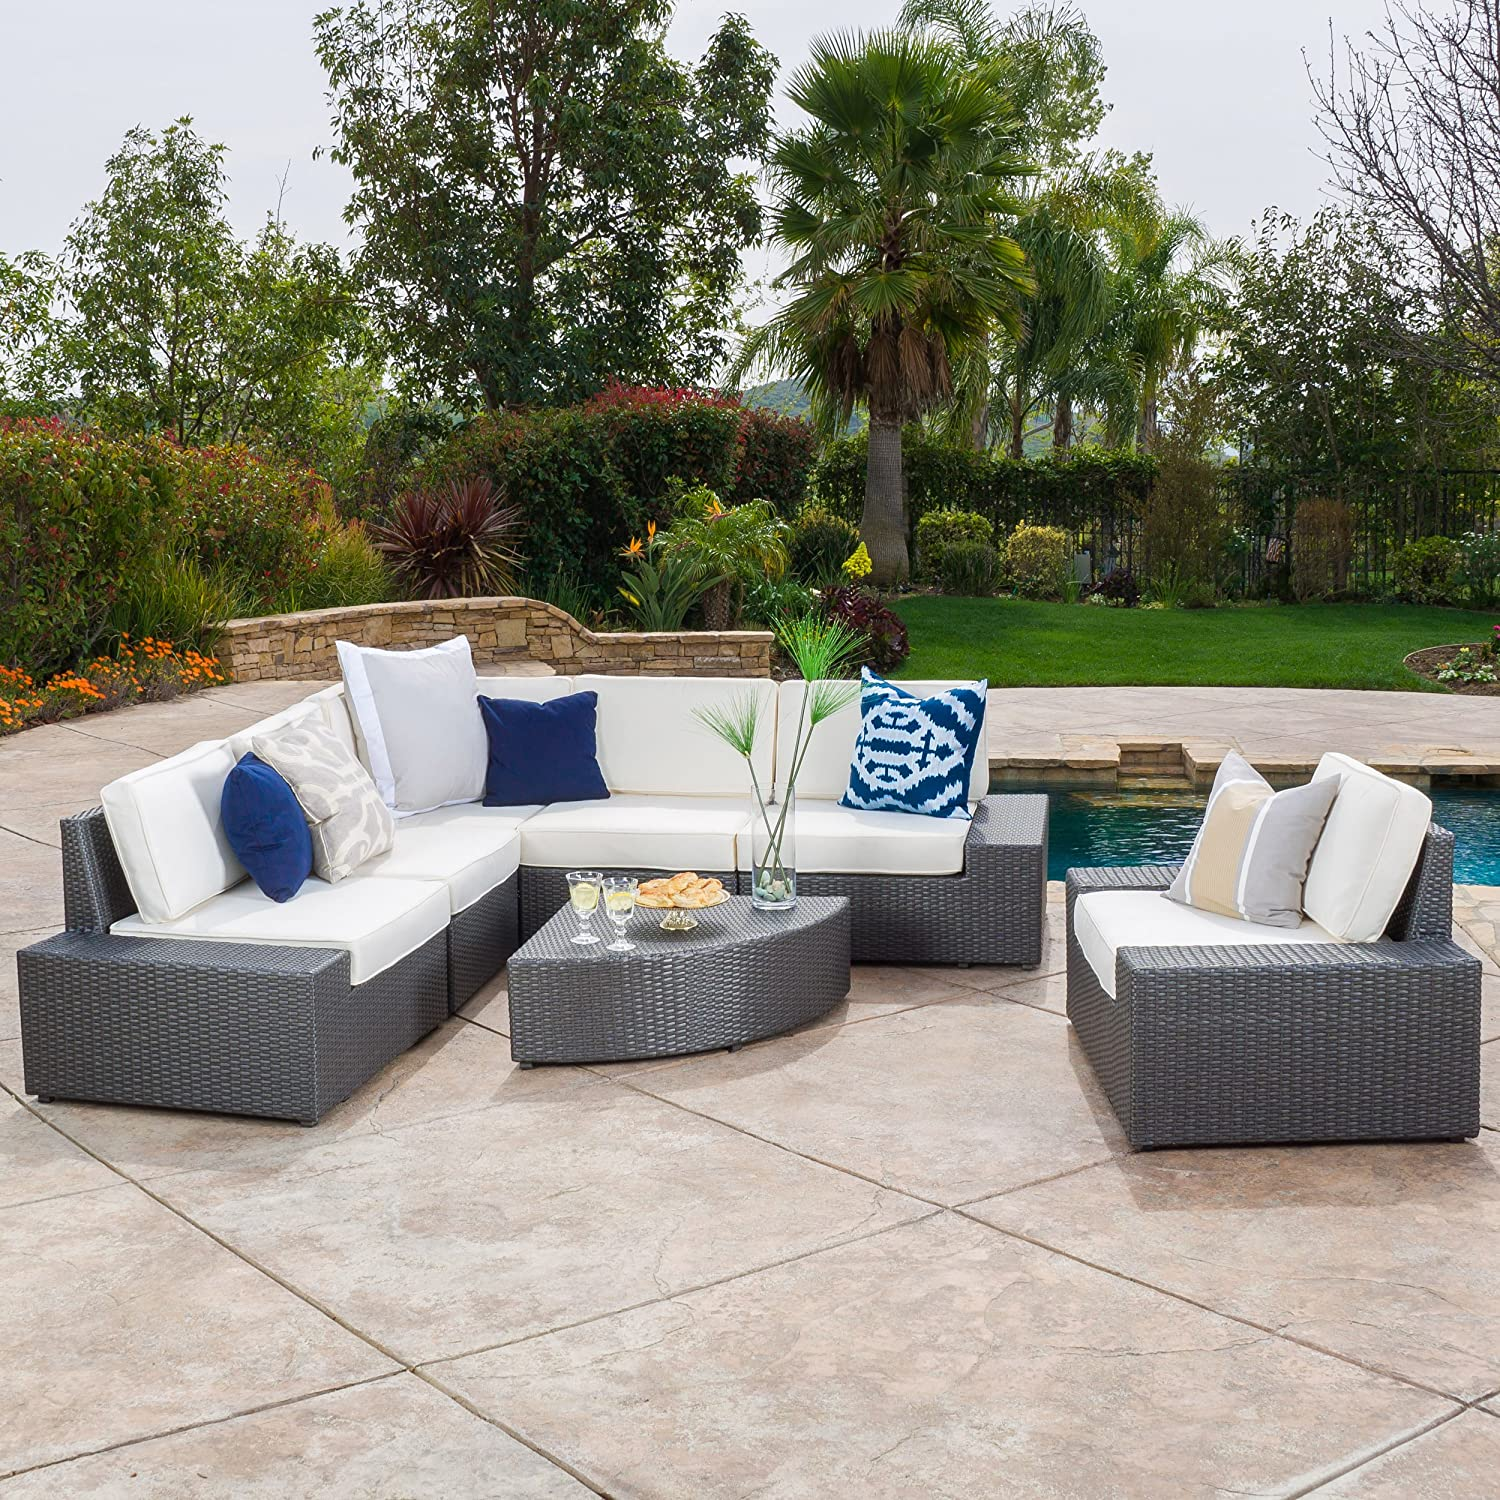 Amazon com great deal furniture santa cruz outdoor 7 piece grey wicker sofa set with cushions garden outdoor